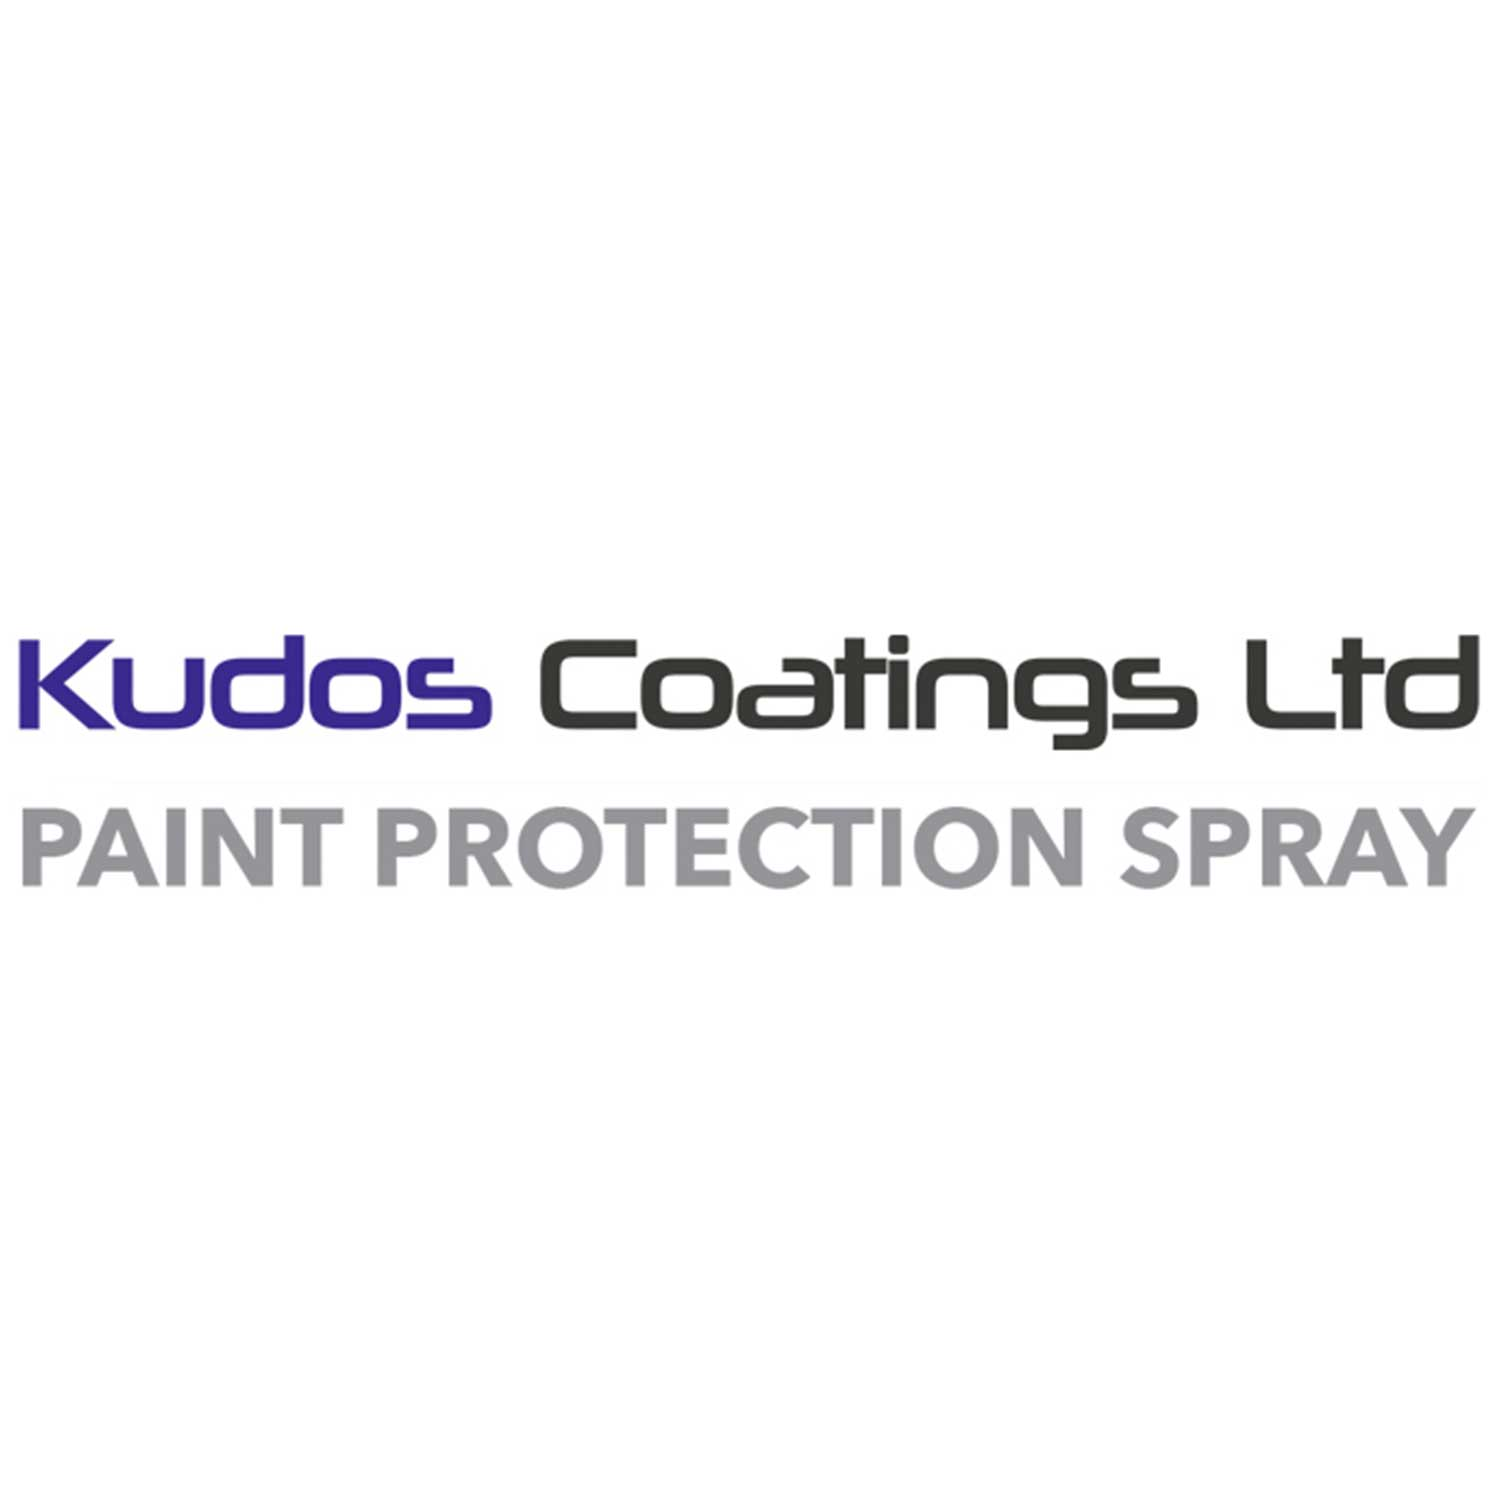 Kudos Coatings